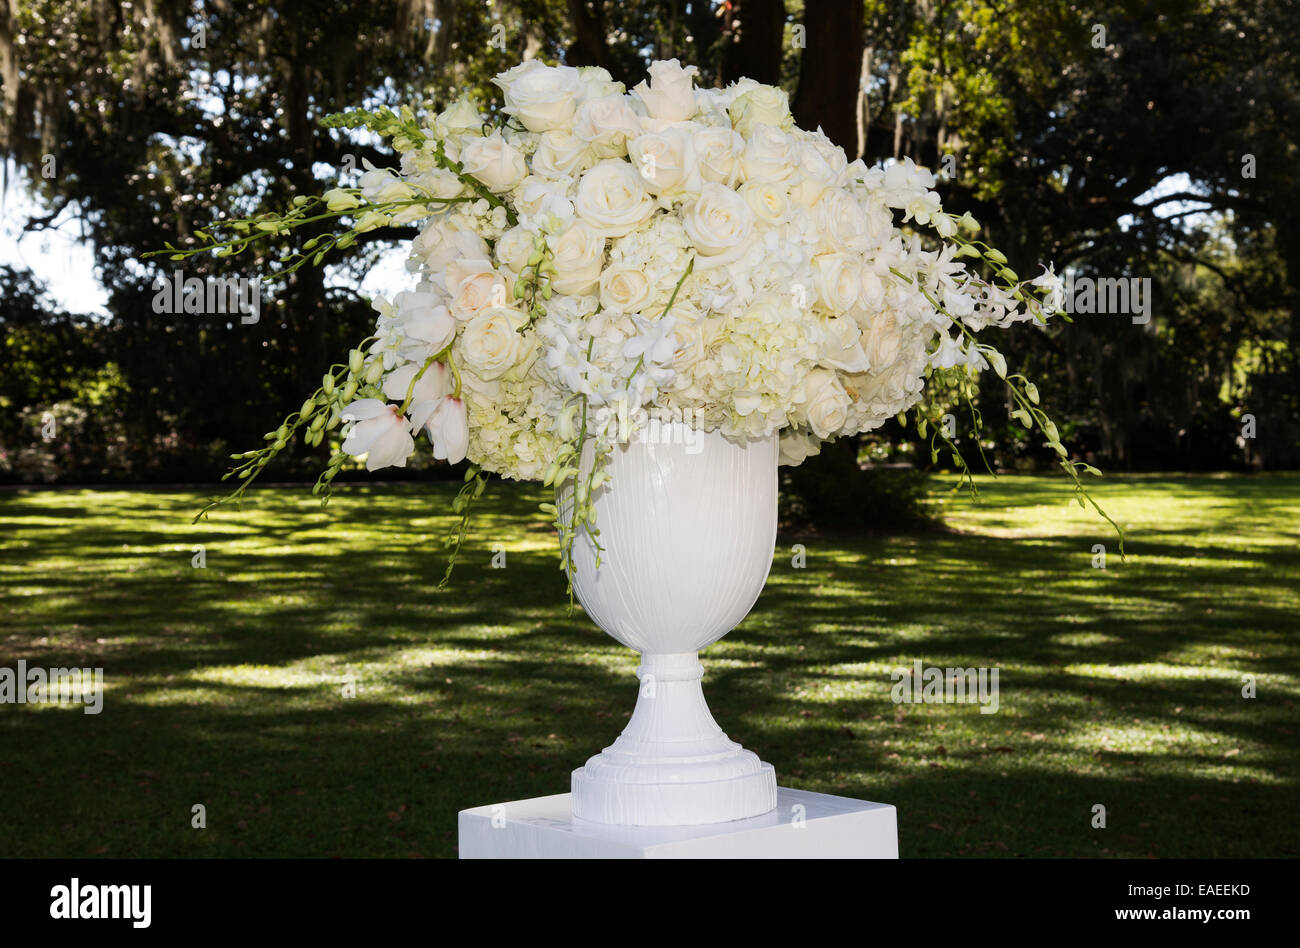 Arrangement Of Flowers In A Large Vase Situated Outdoors Stock Photo Alamy